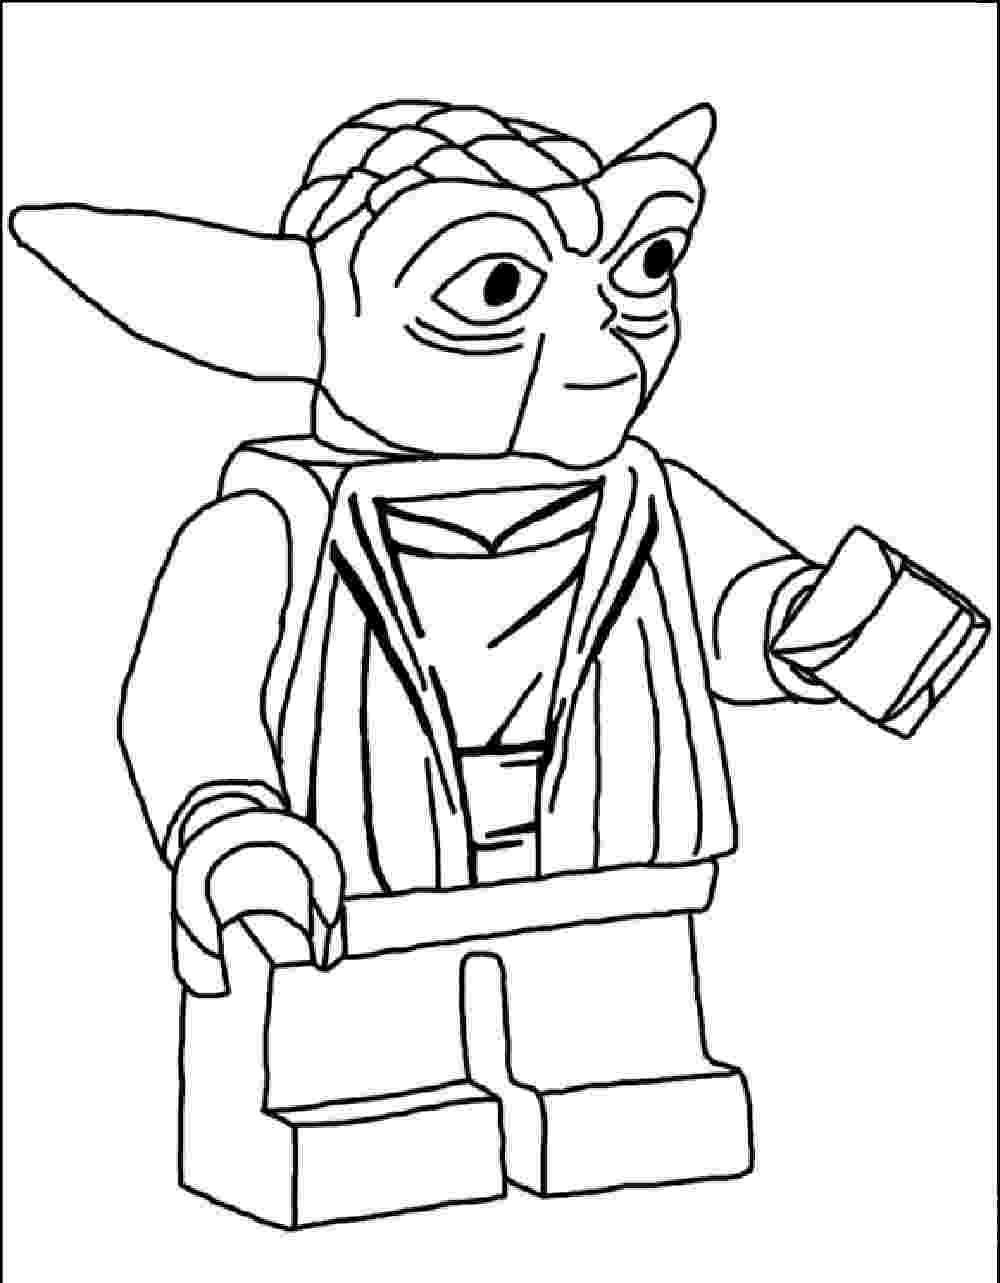 coloriage lego star wars lego star wars a colorier star coloriage lego wars